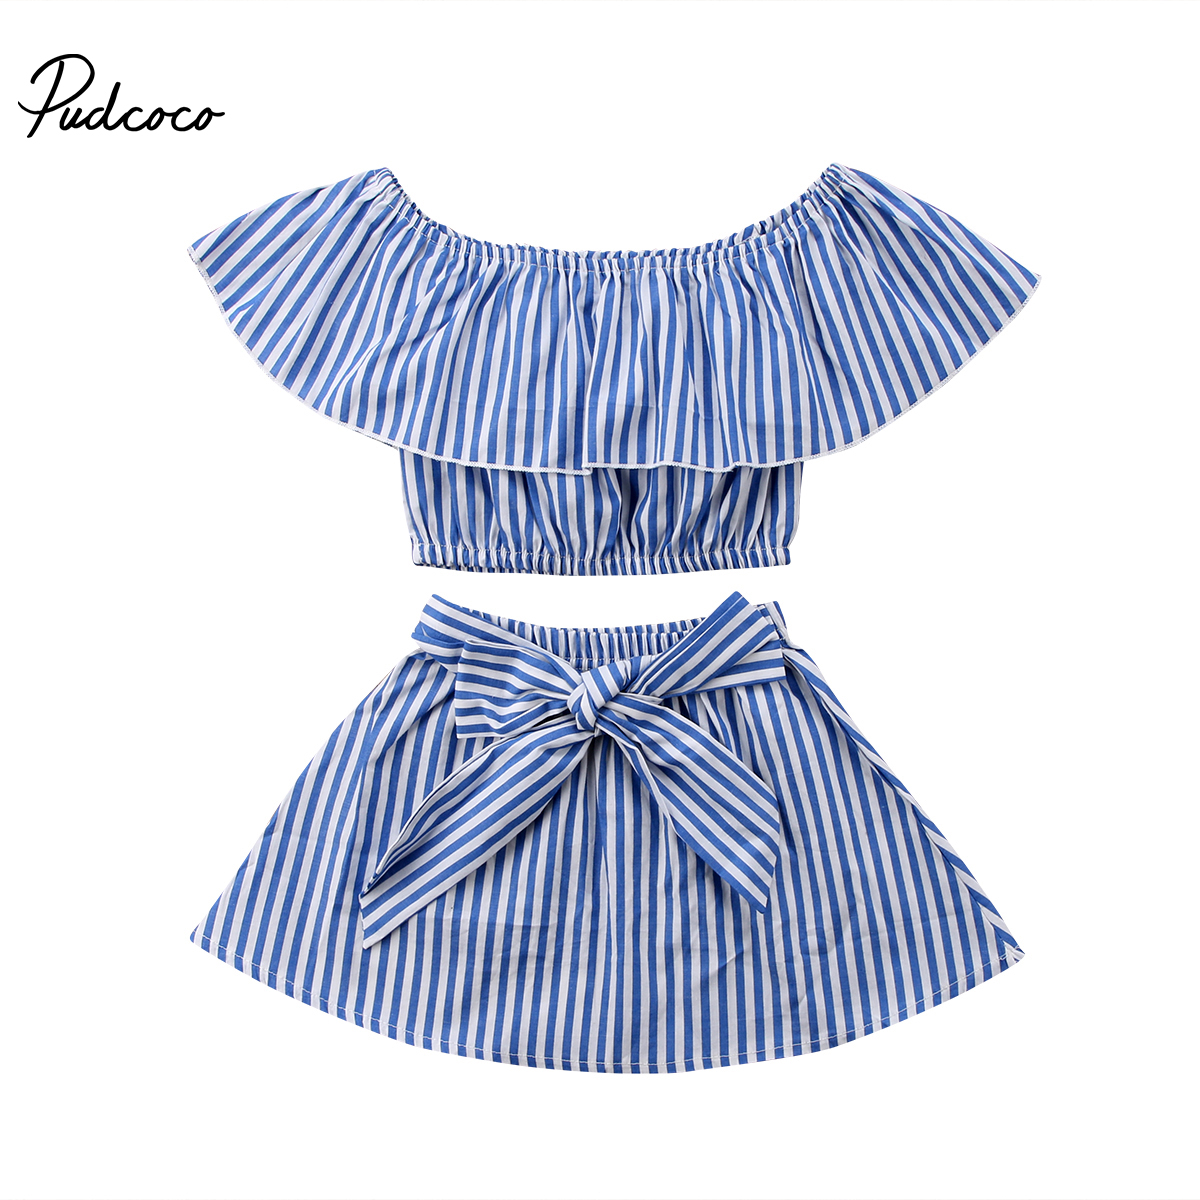 все цены на Kids Toddler Girl Summer Clothing Set Ruffle Off-Shoulder T-shirt Top+Bow Skirt Tutu Dress Stripe Baby Clothes Outfit